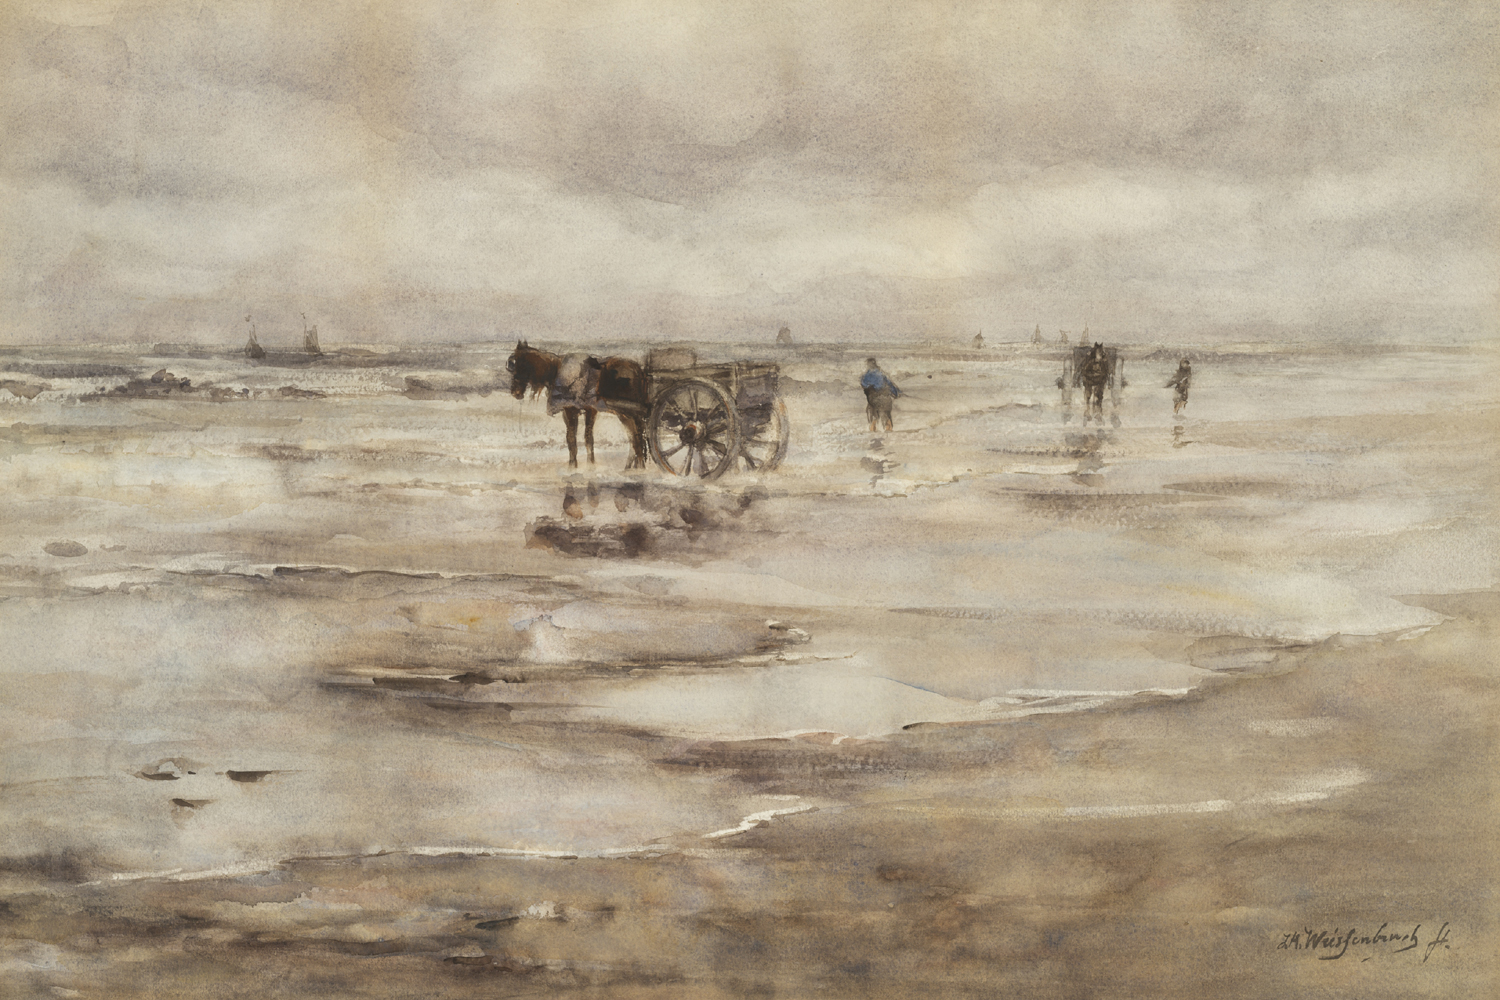 J.H. Weissenbruch | Shell gatherers on the beach| Kunsthandel Bies | Bies Gallery